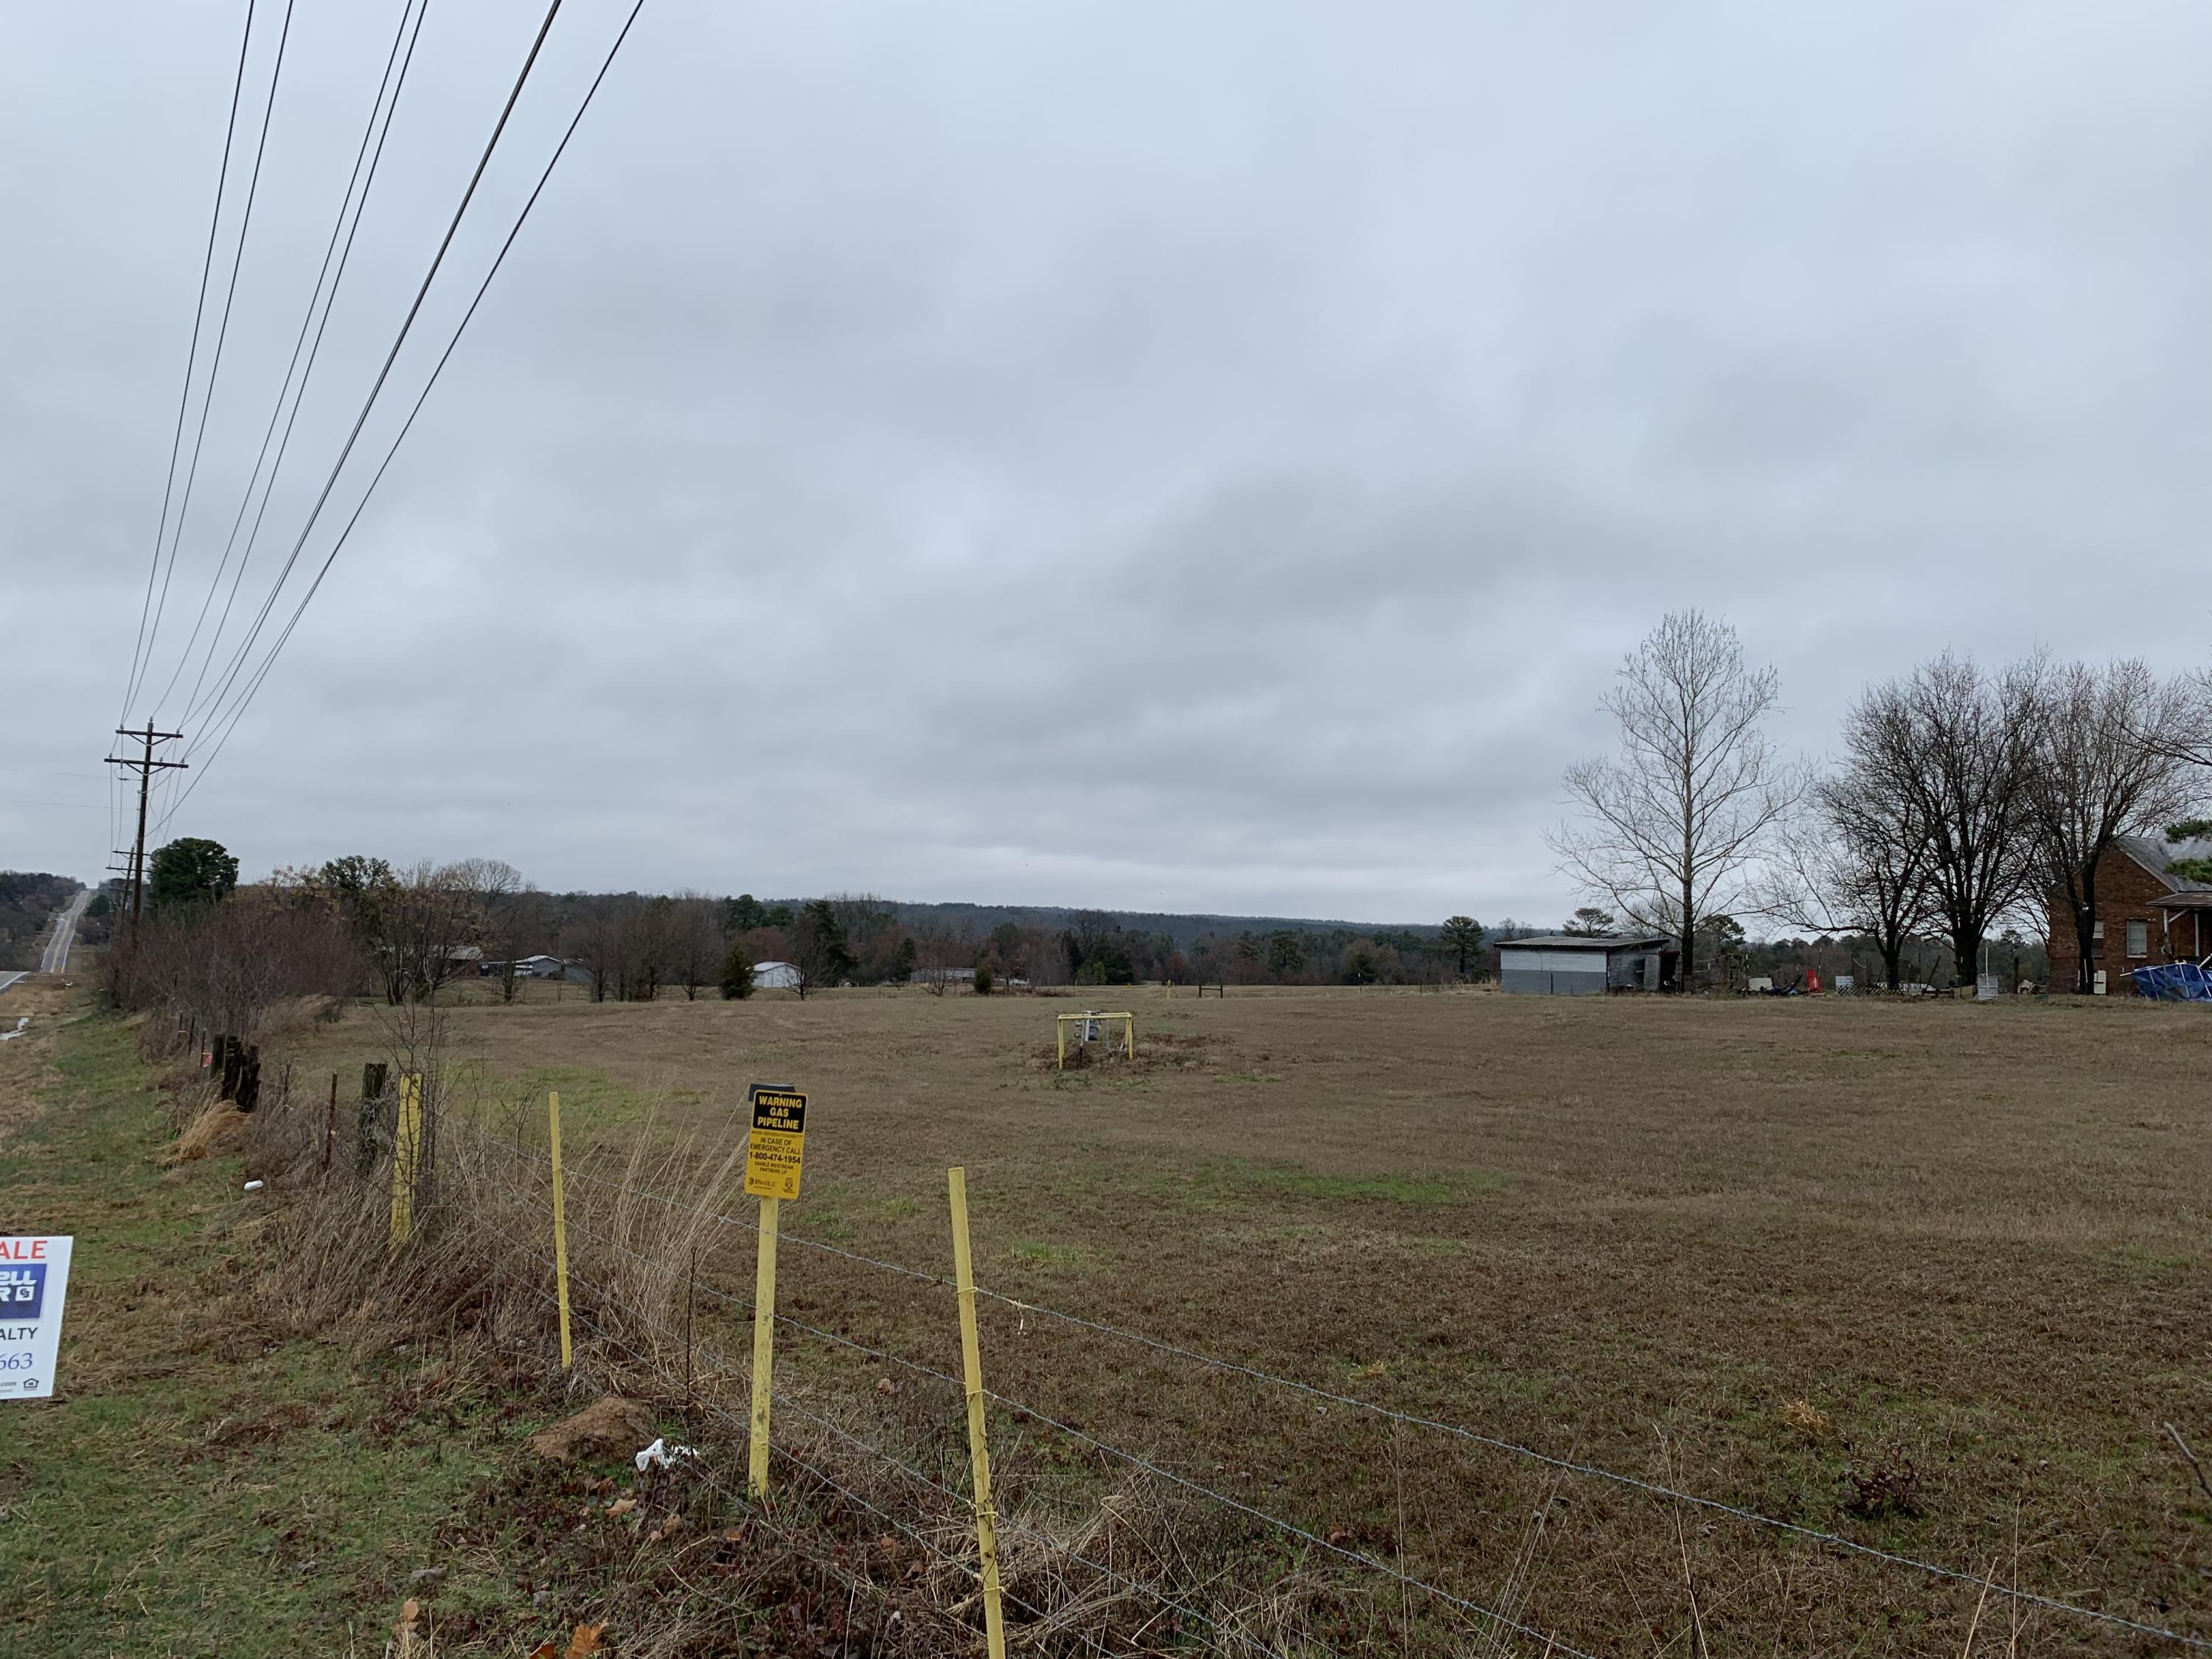 Large photo 2 of land for sale at 2 Co Rd 1760 , London, AR, listed by Coldwell Banker Premier Realty